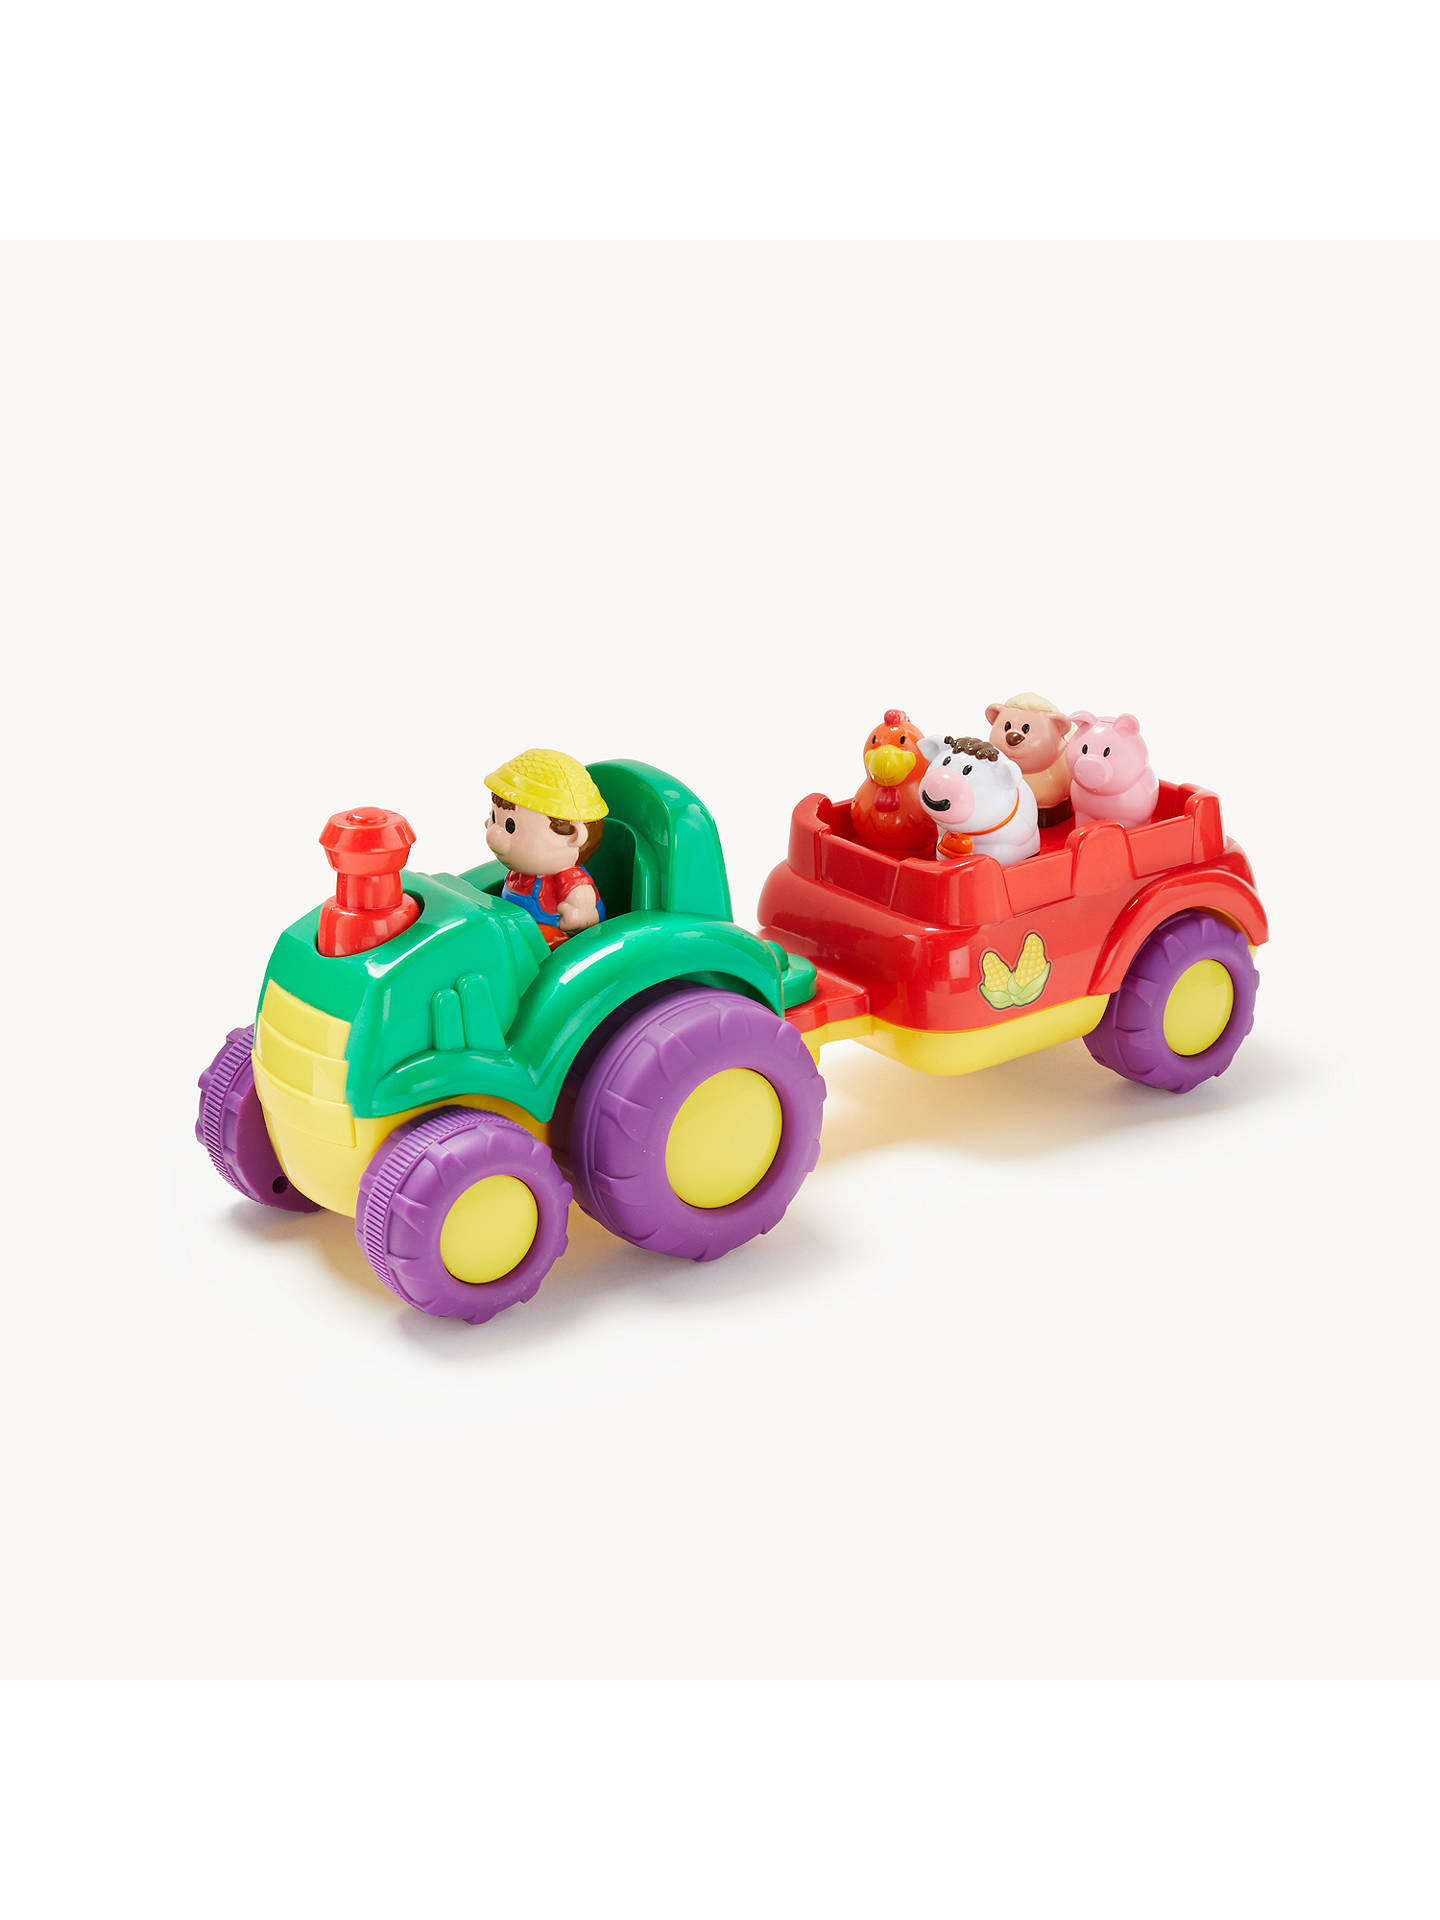 BuyJohn Lewis & Partners Musical Farm Tractor & Trailer Playset Online at johnlewis.com